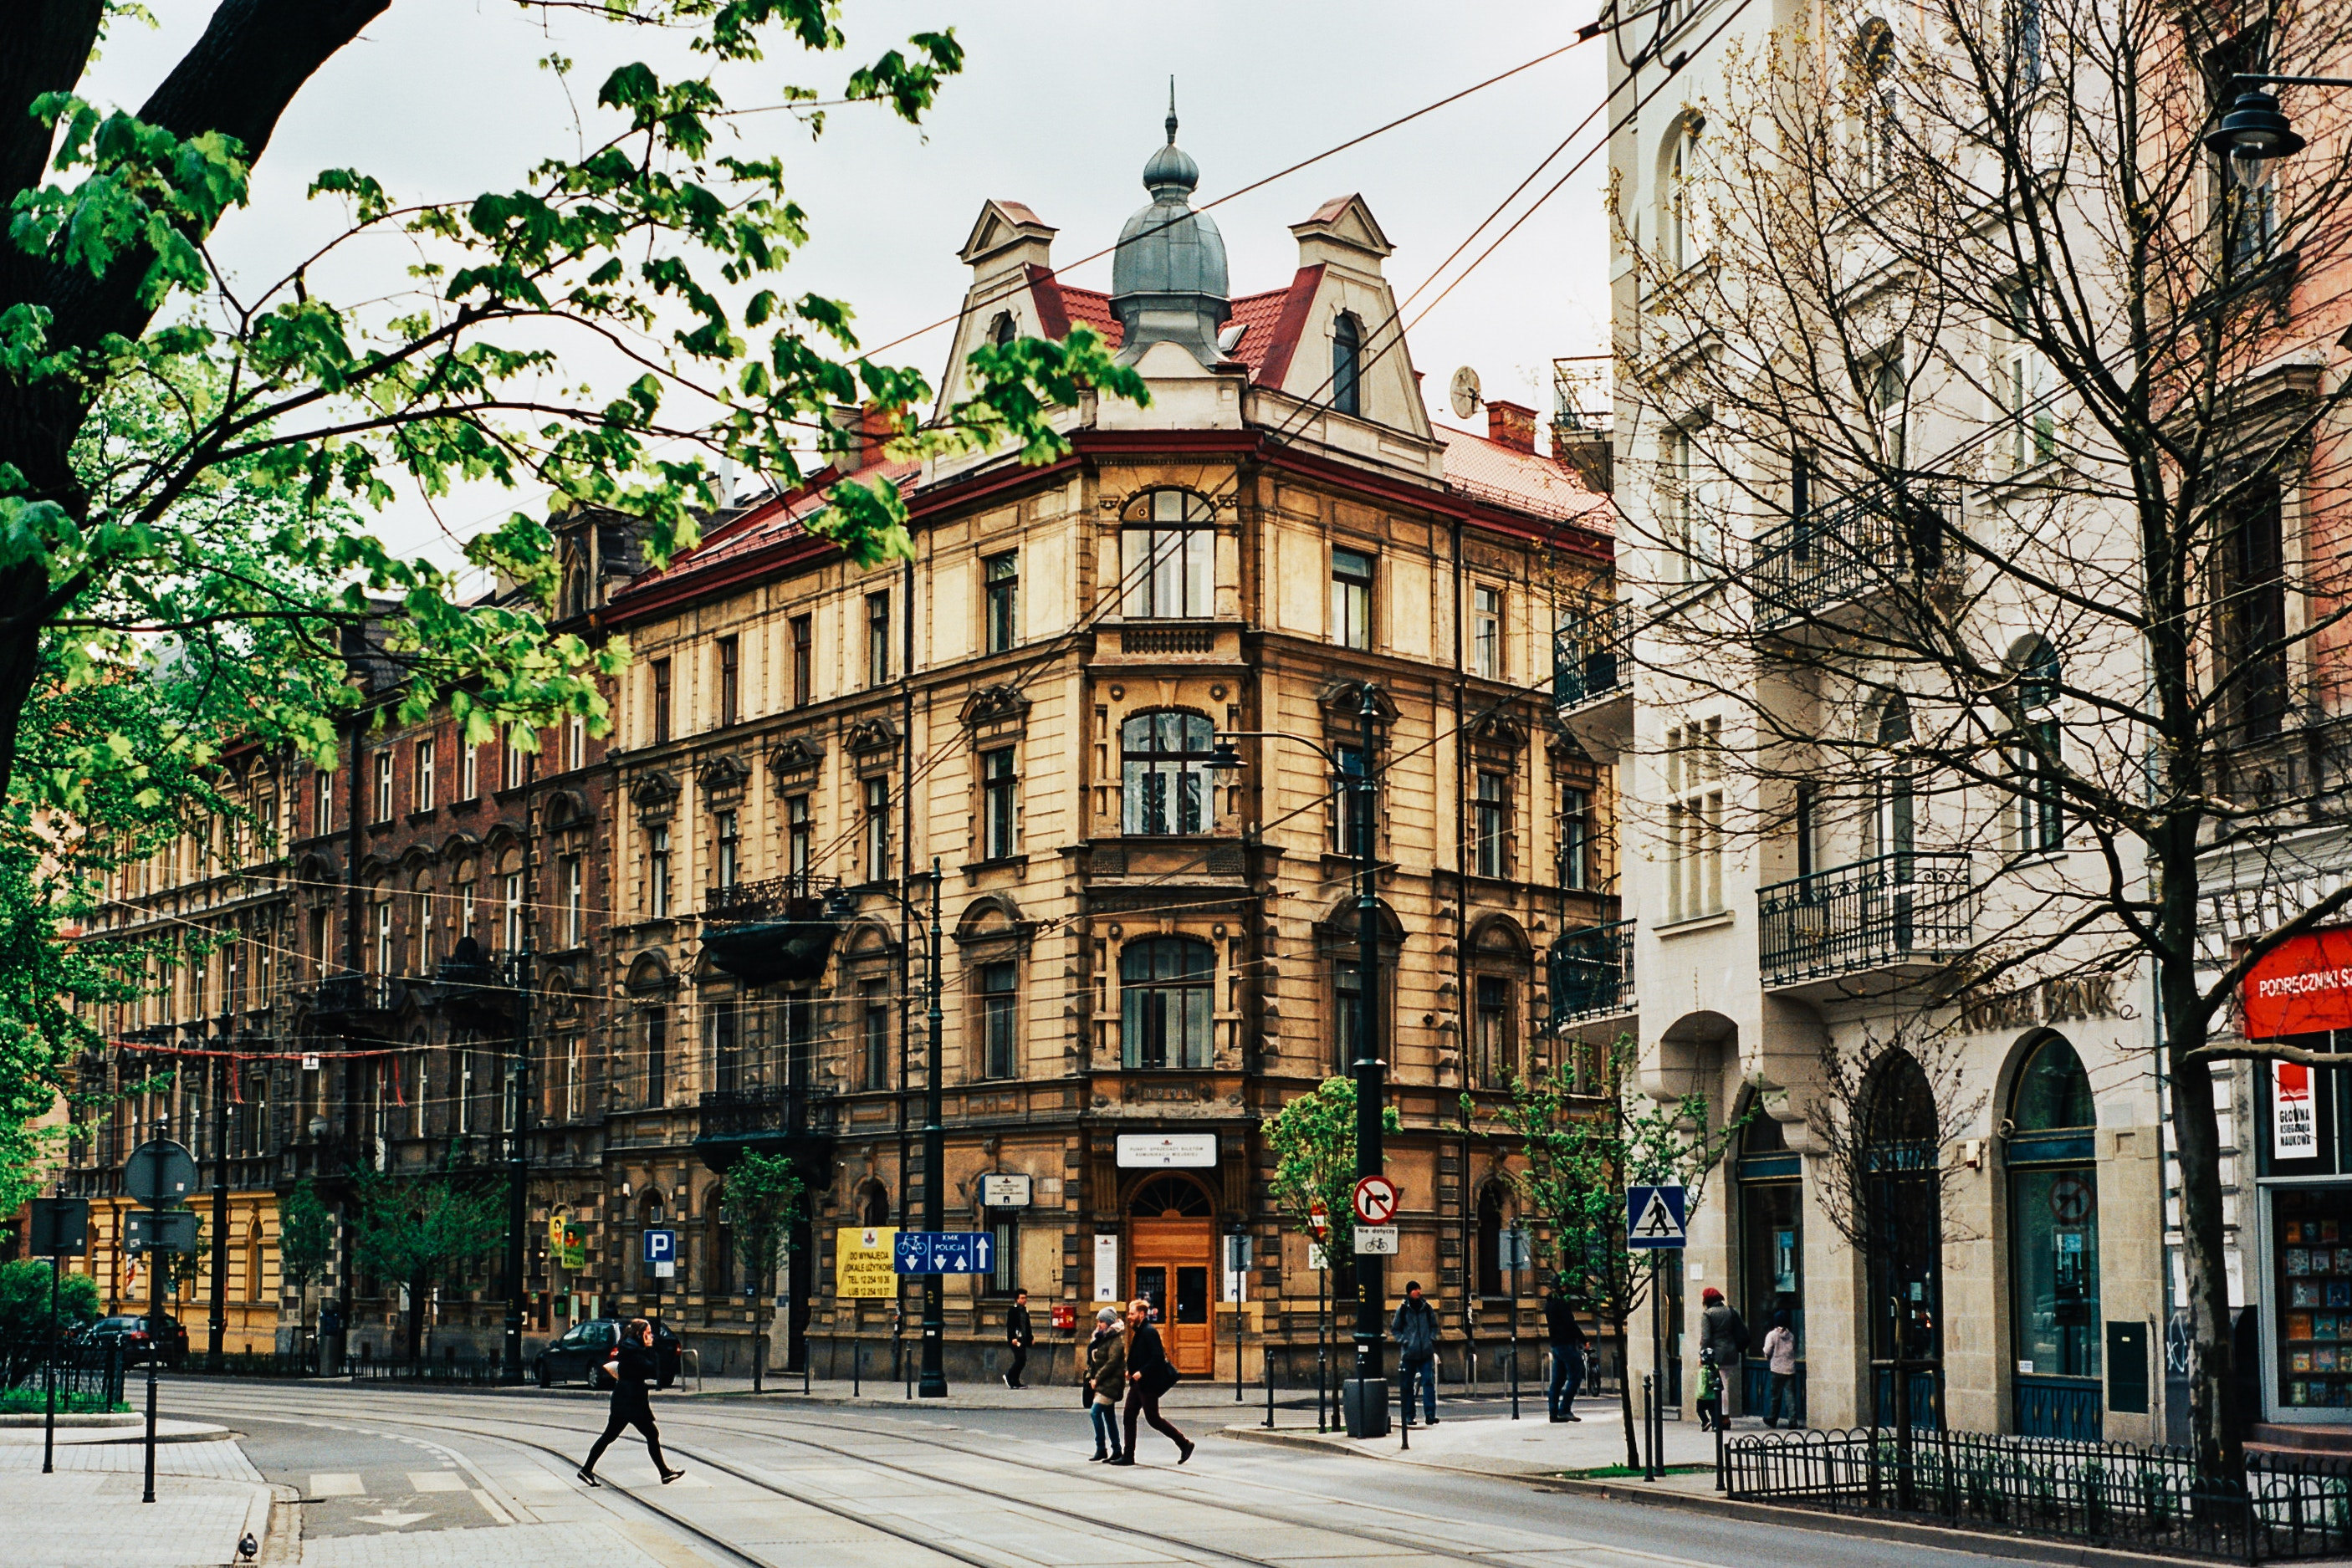 Polands currency the ultimate guide when traveling to krakow polands currency biocorpaavc Choice Image